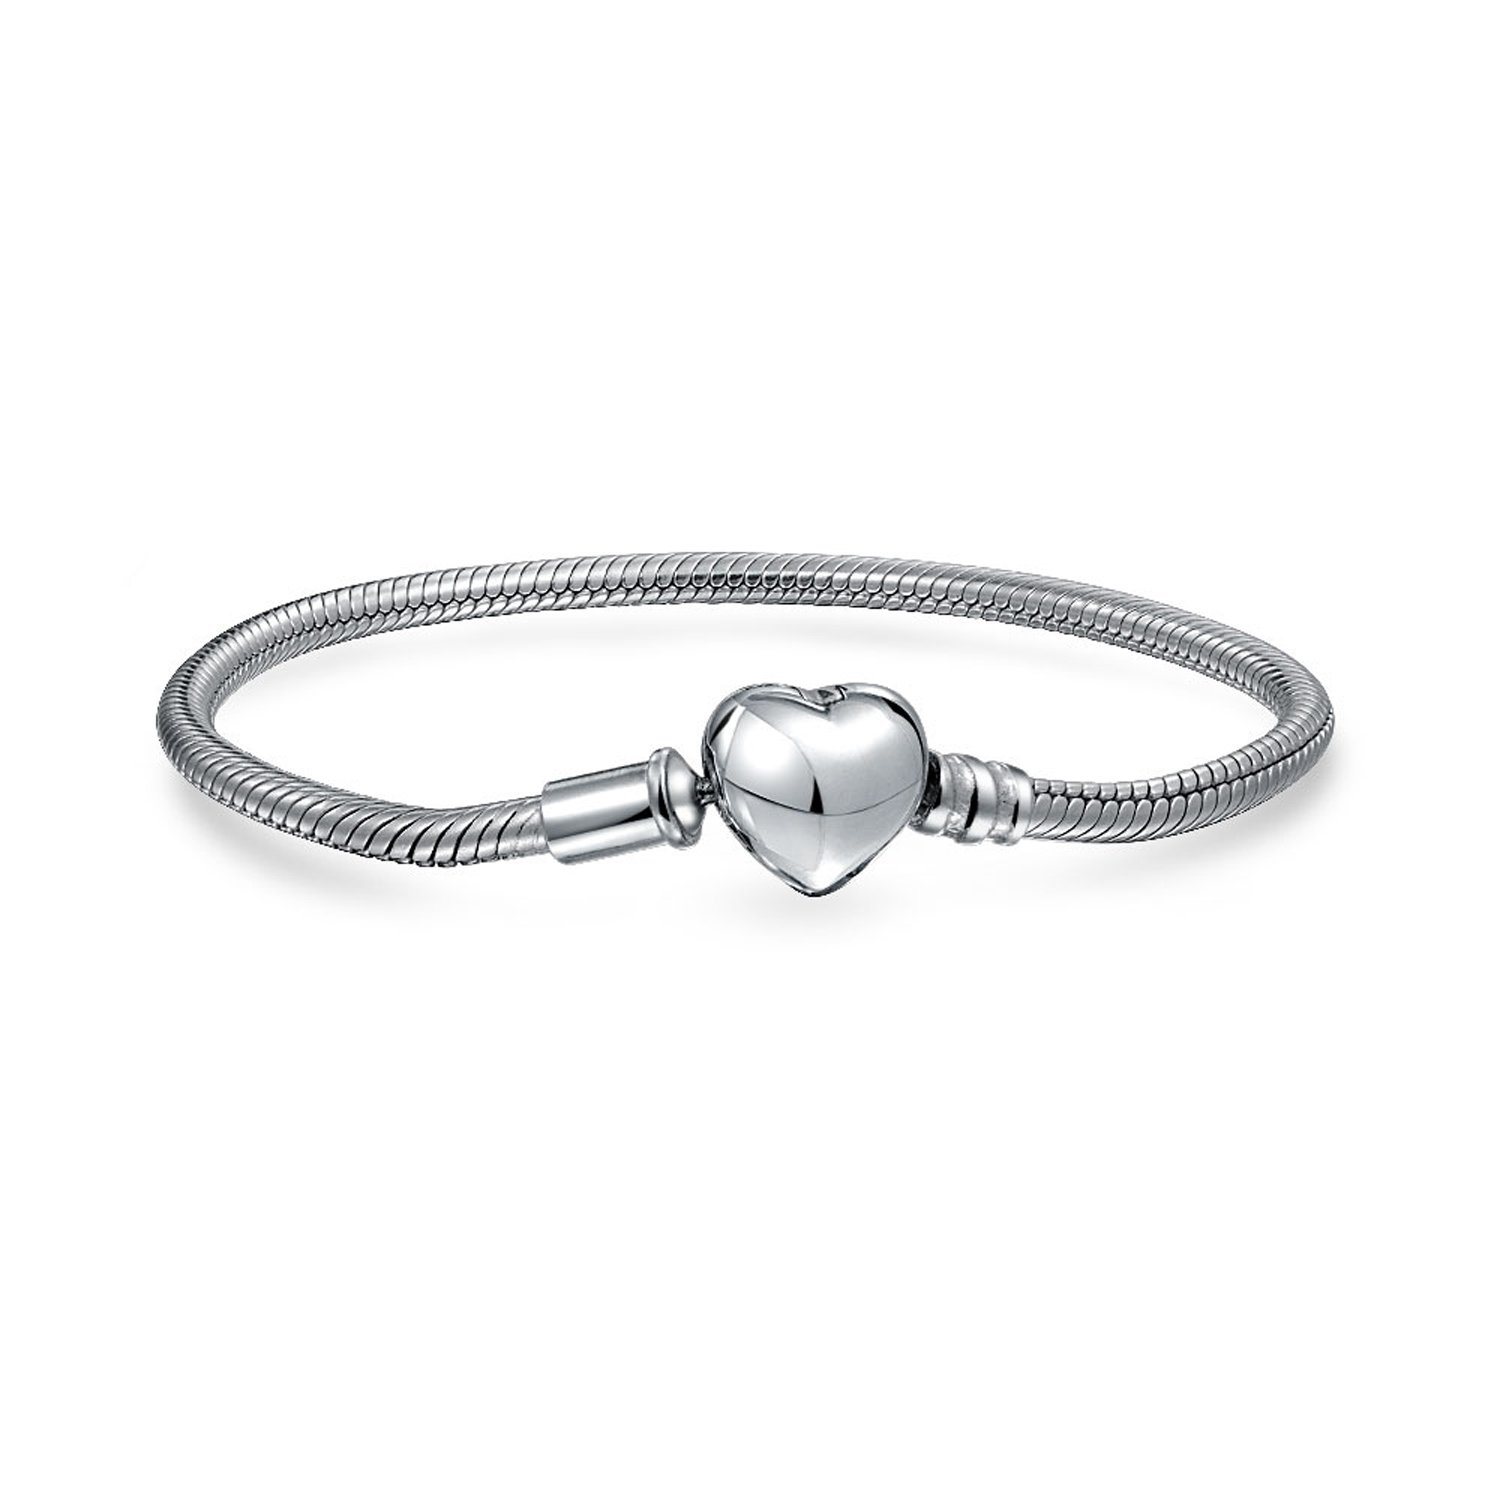 Bling Jewelry Snake Chain Bracelet Heart Barrel Clasp For Charm Bead .925 Sterling Silver